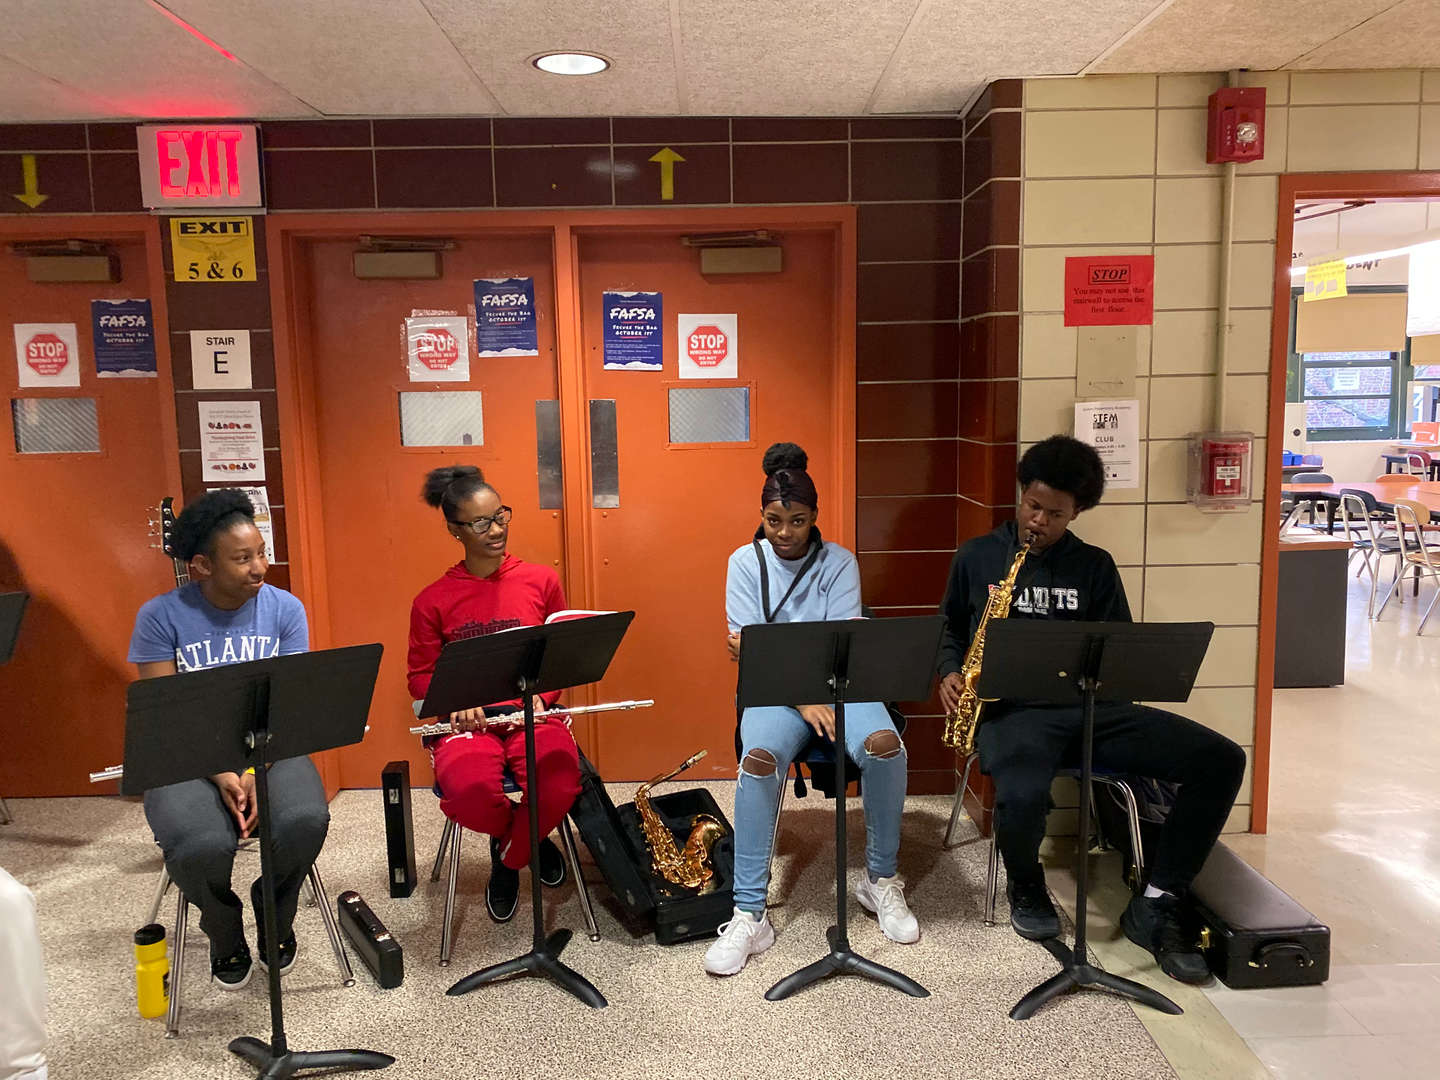 Our Musicians Playing